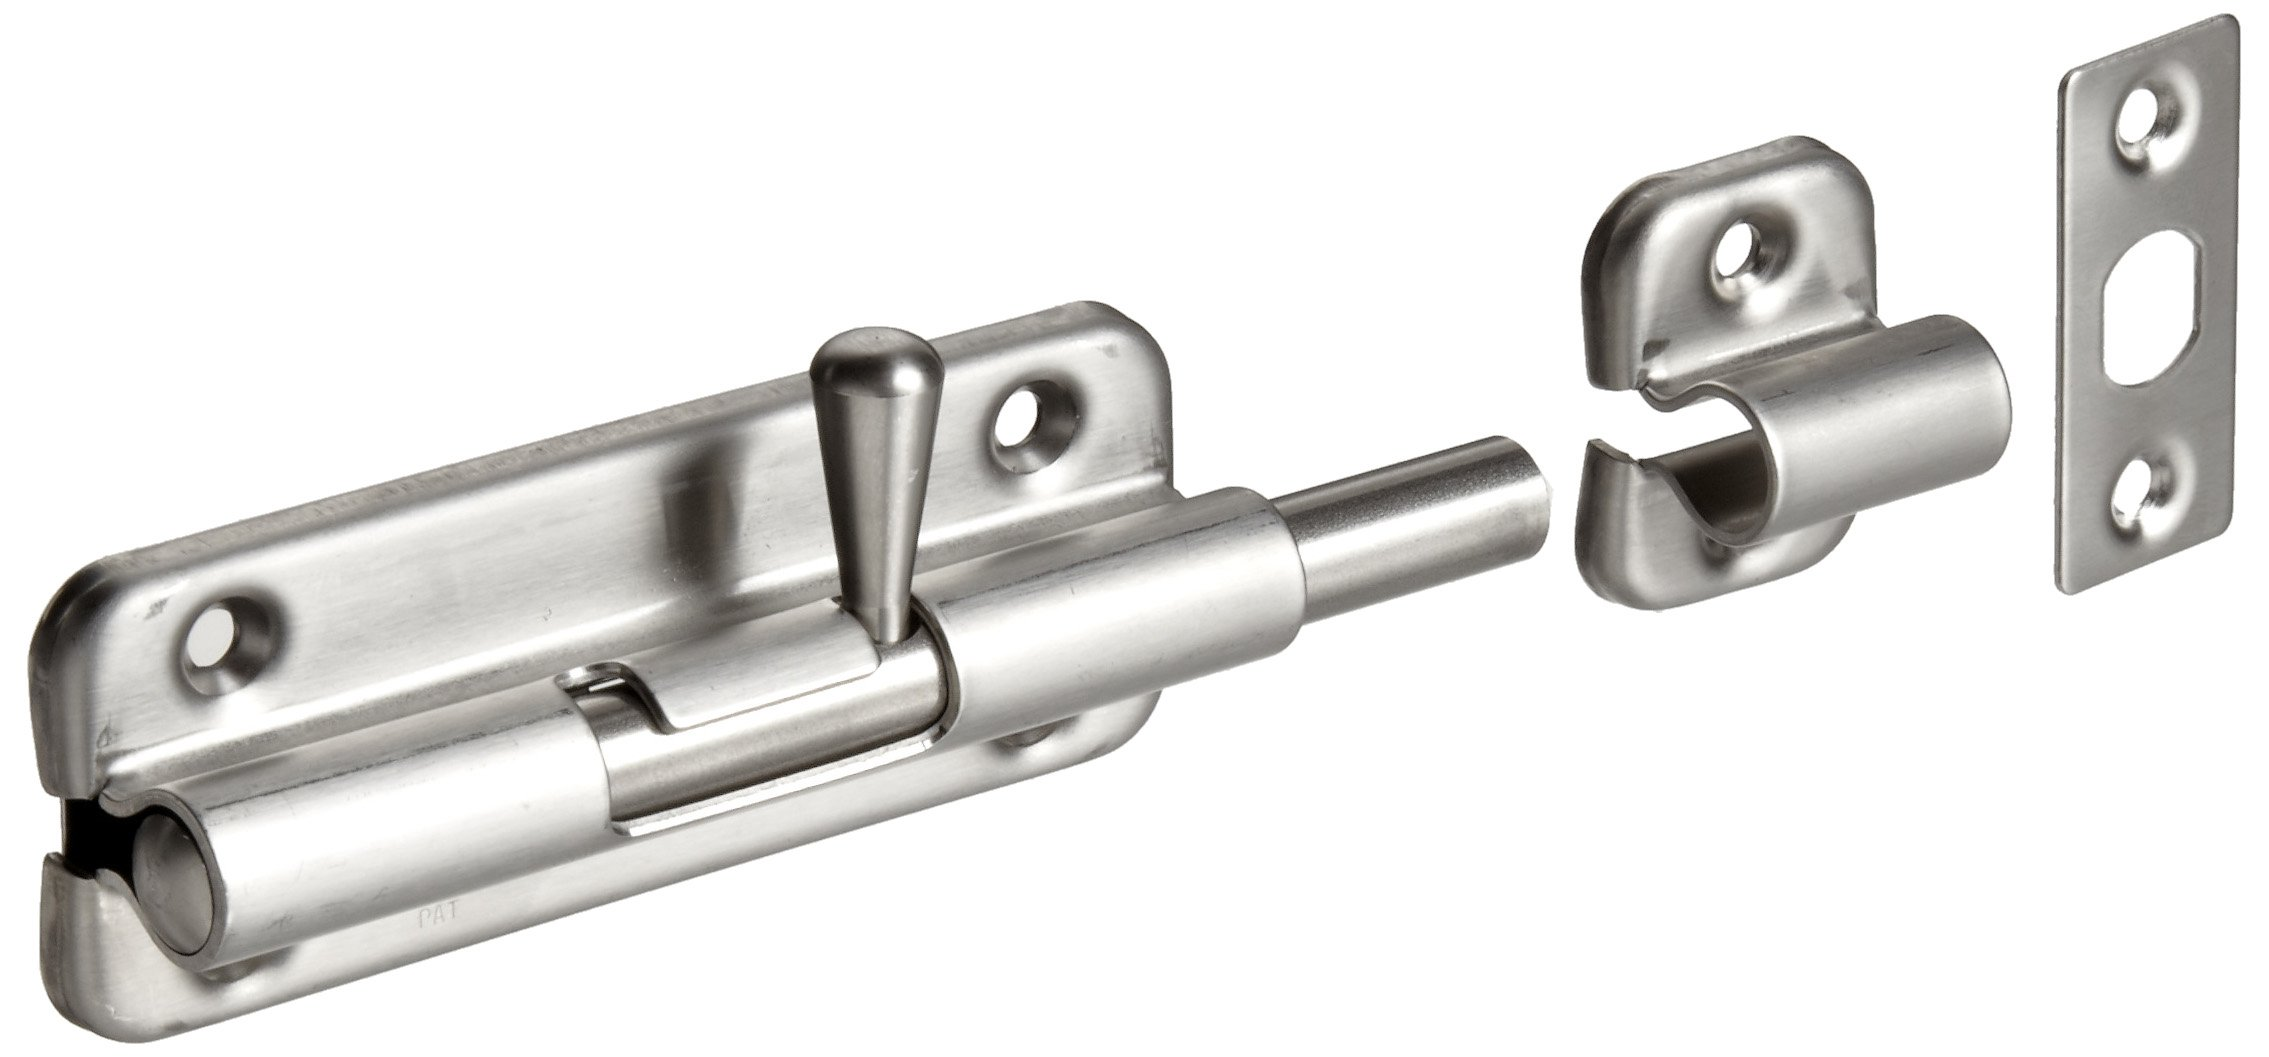 Stainless Steel 304 Spring Loaded Barrel Bolt, Satin Finish, Non Locking, 3-35/64 Bolt Plate Length, 45/64 Throw Plate Length (Pack of 1)